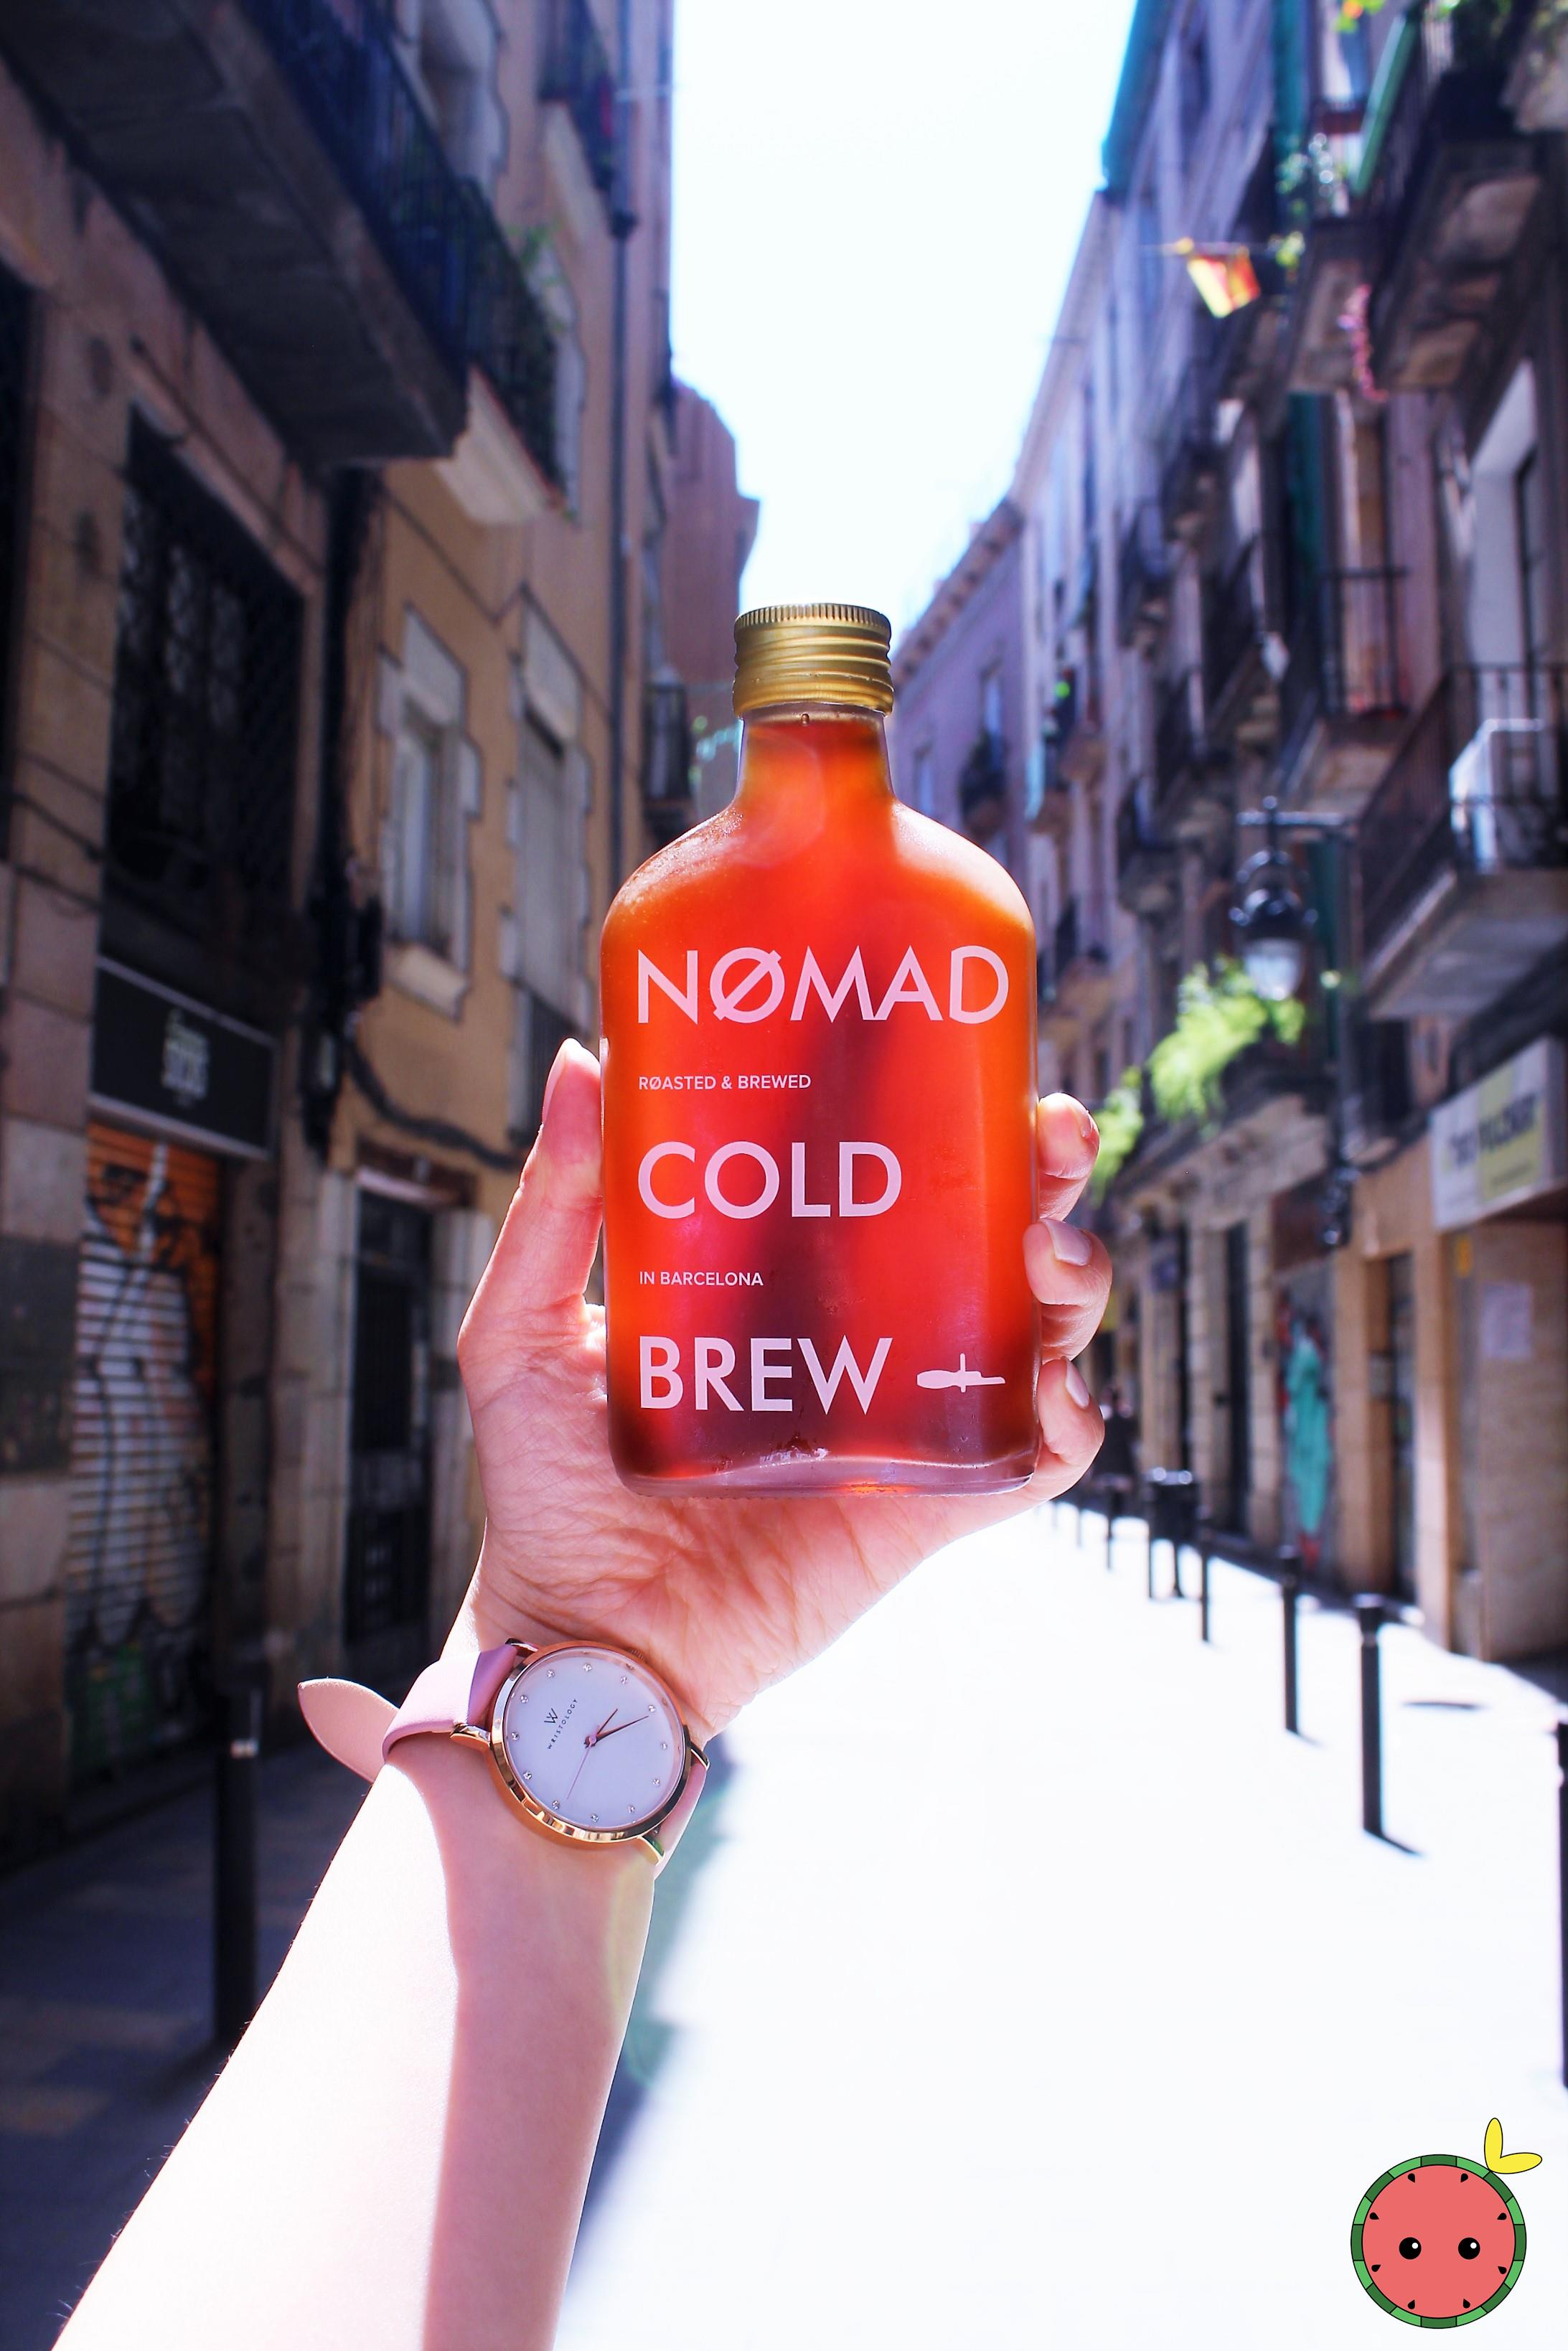 Nomad Cold Brew